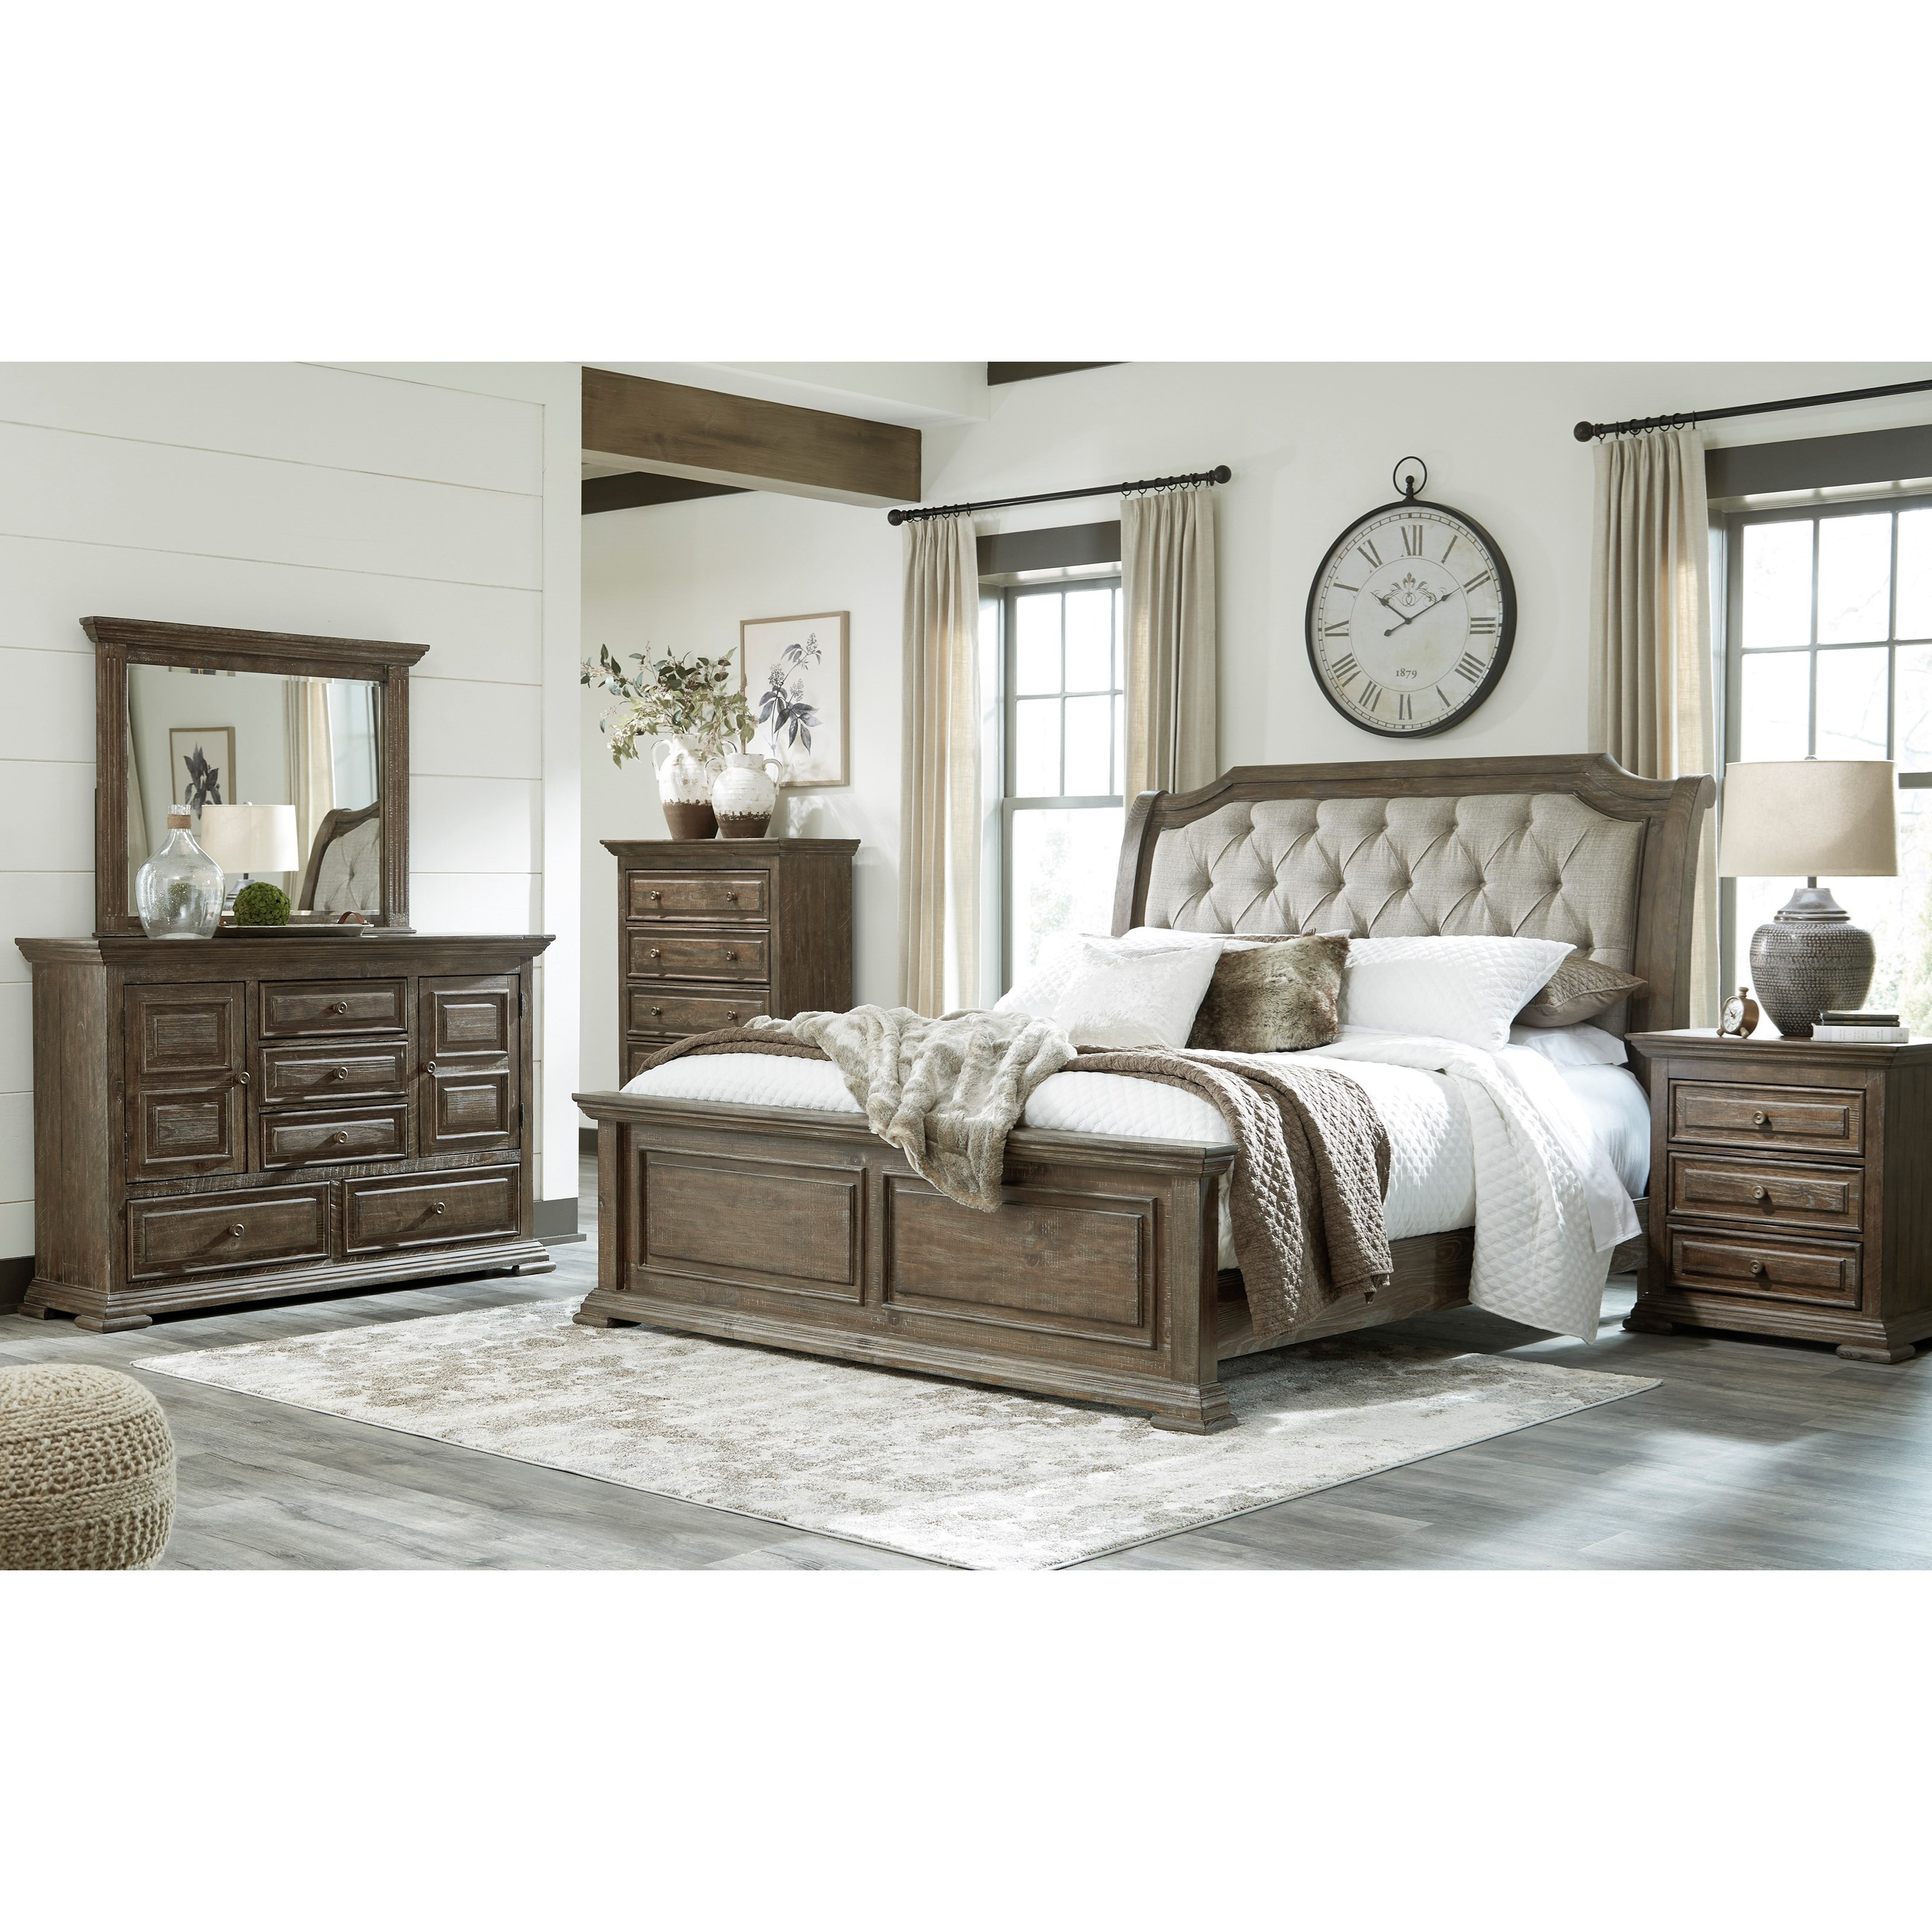 Wyndahl California King Bedroom Group by Signature Design by Ashley at Furniture Barn